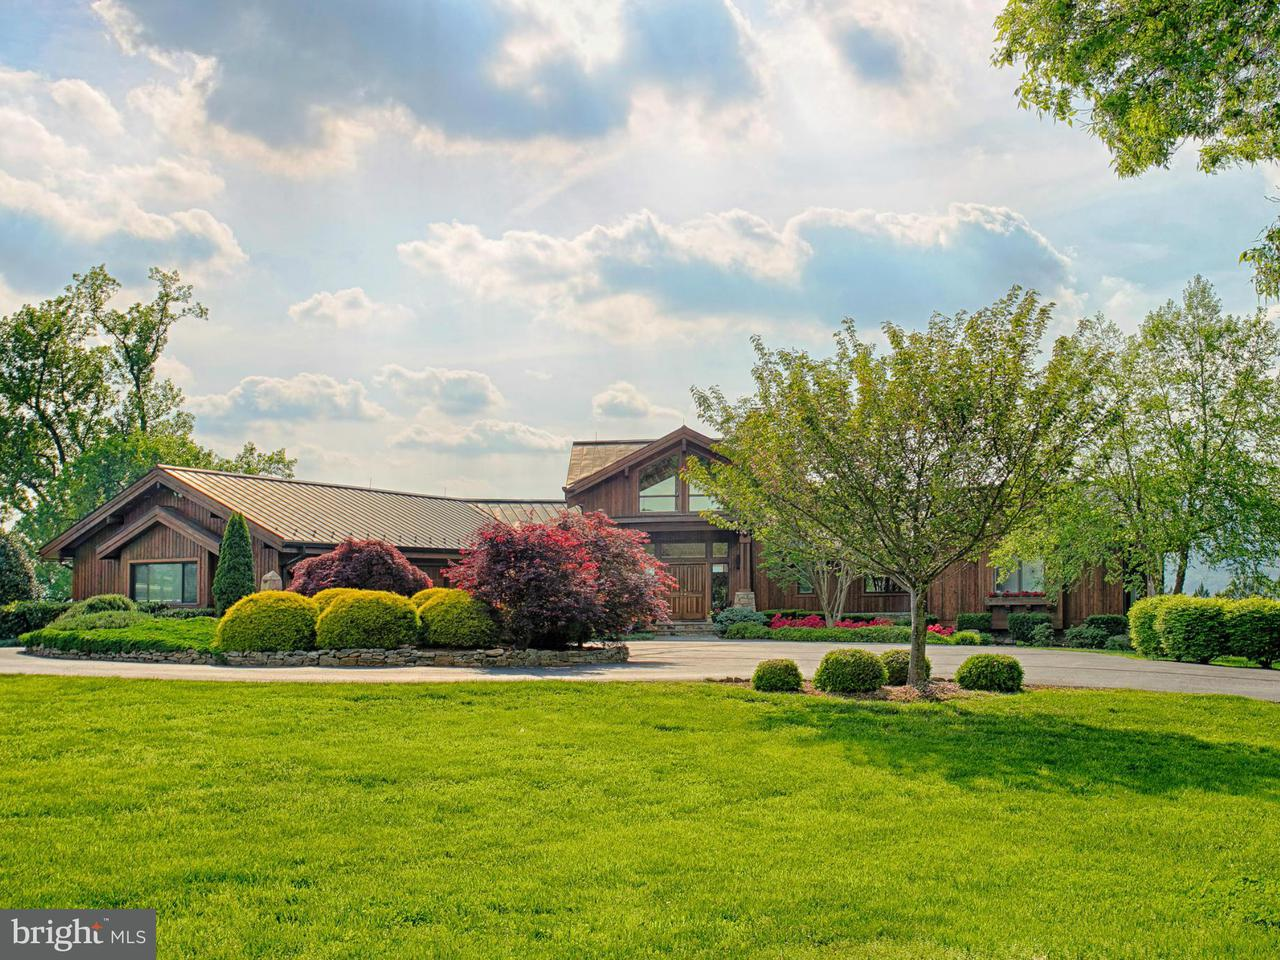 Additional photo for property listing at 10306 ADA Road 10306 ADA Road Marshall, Virginia 20115 Verenigde Staten